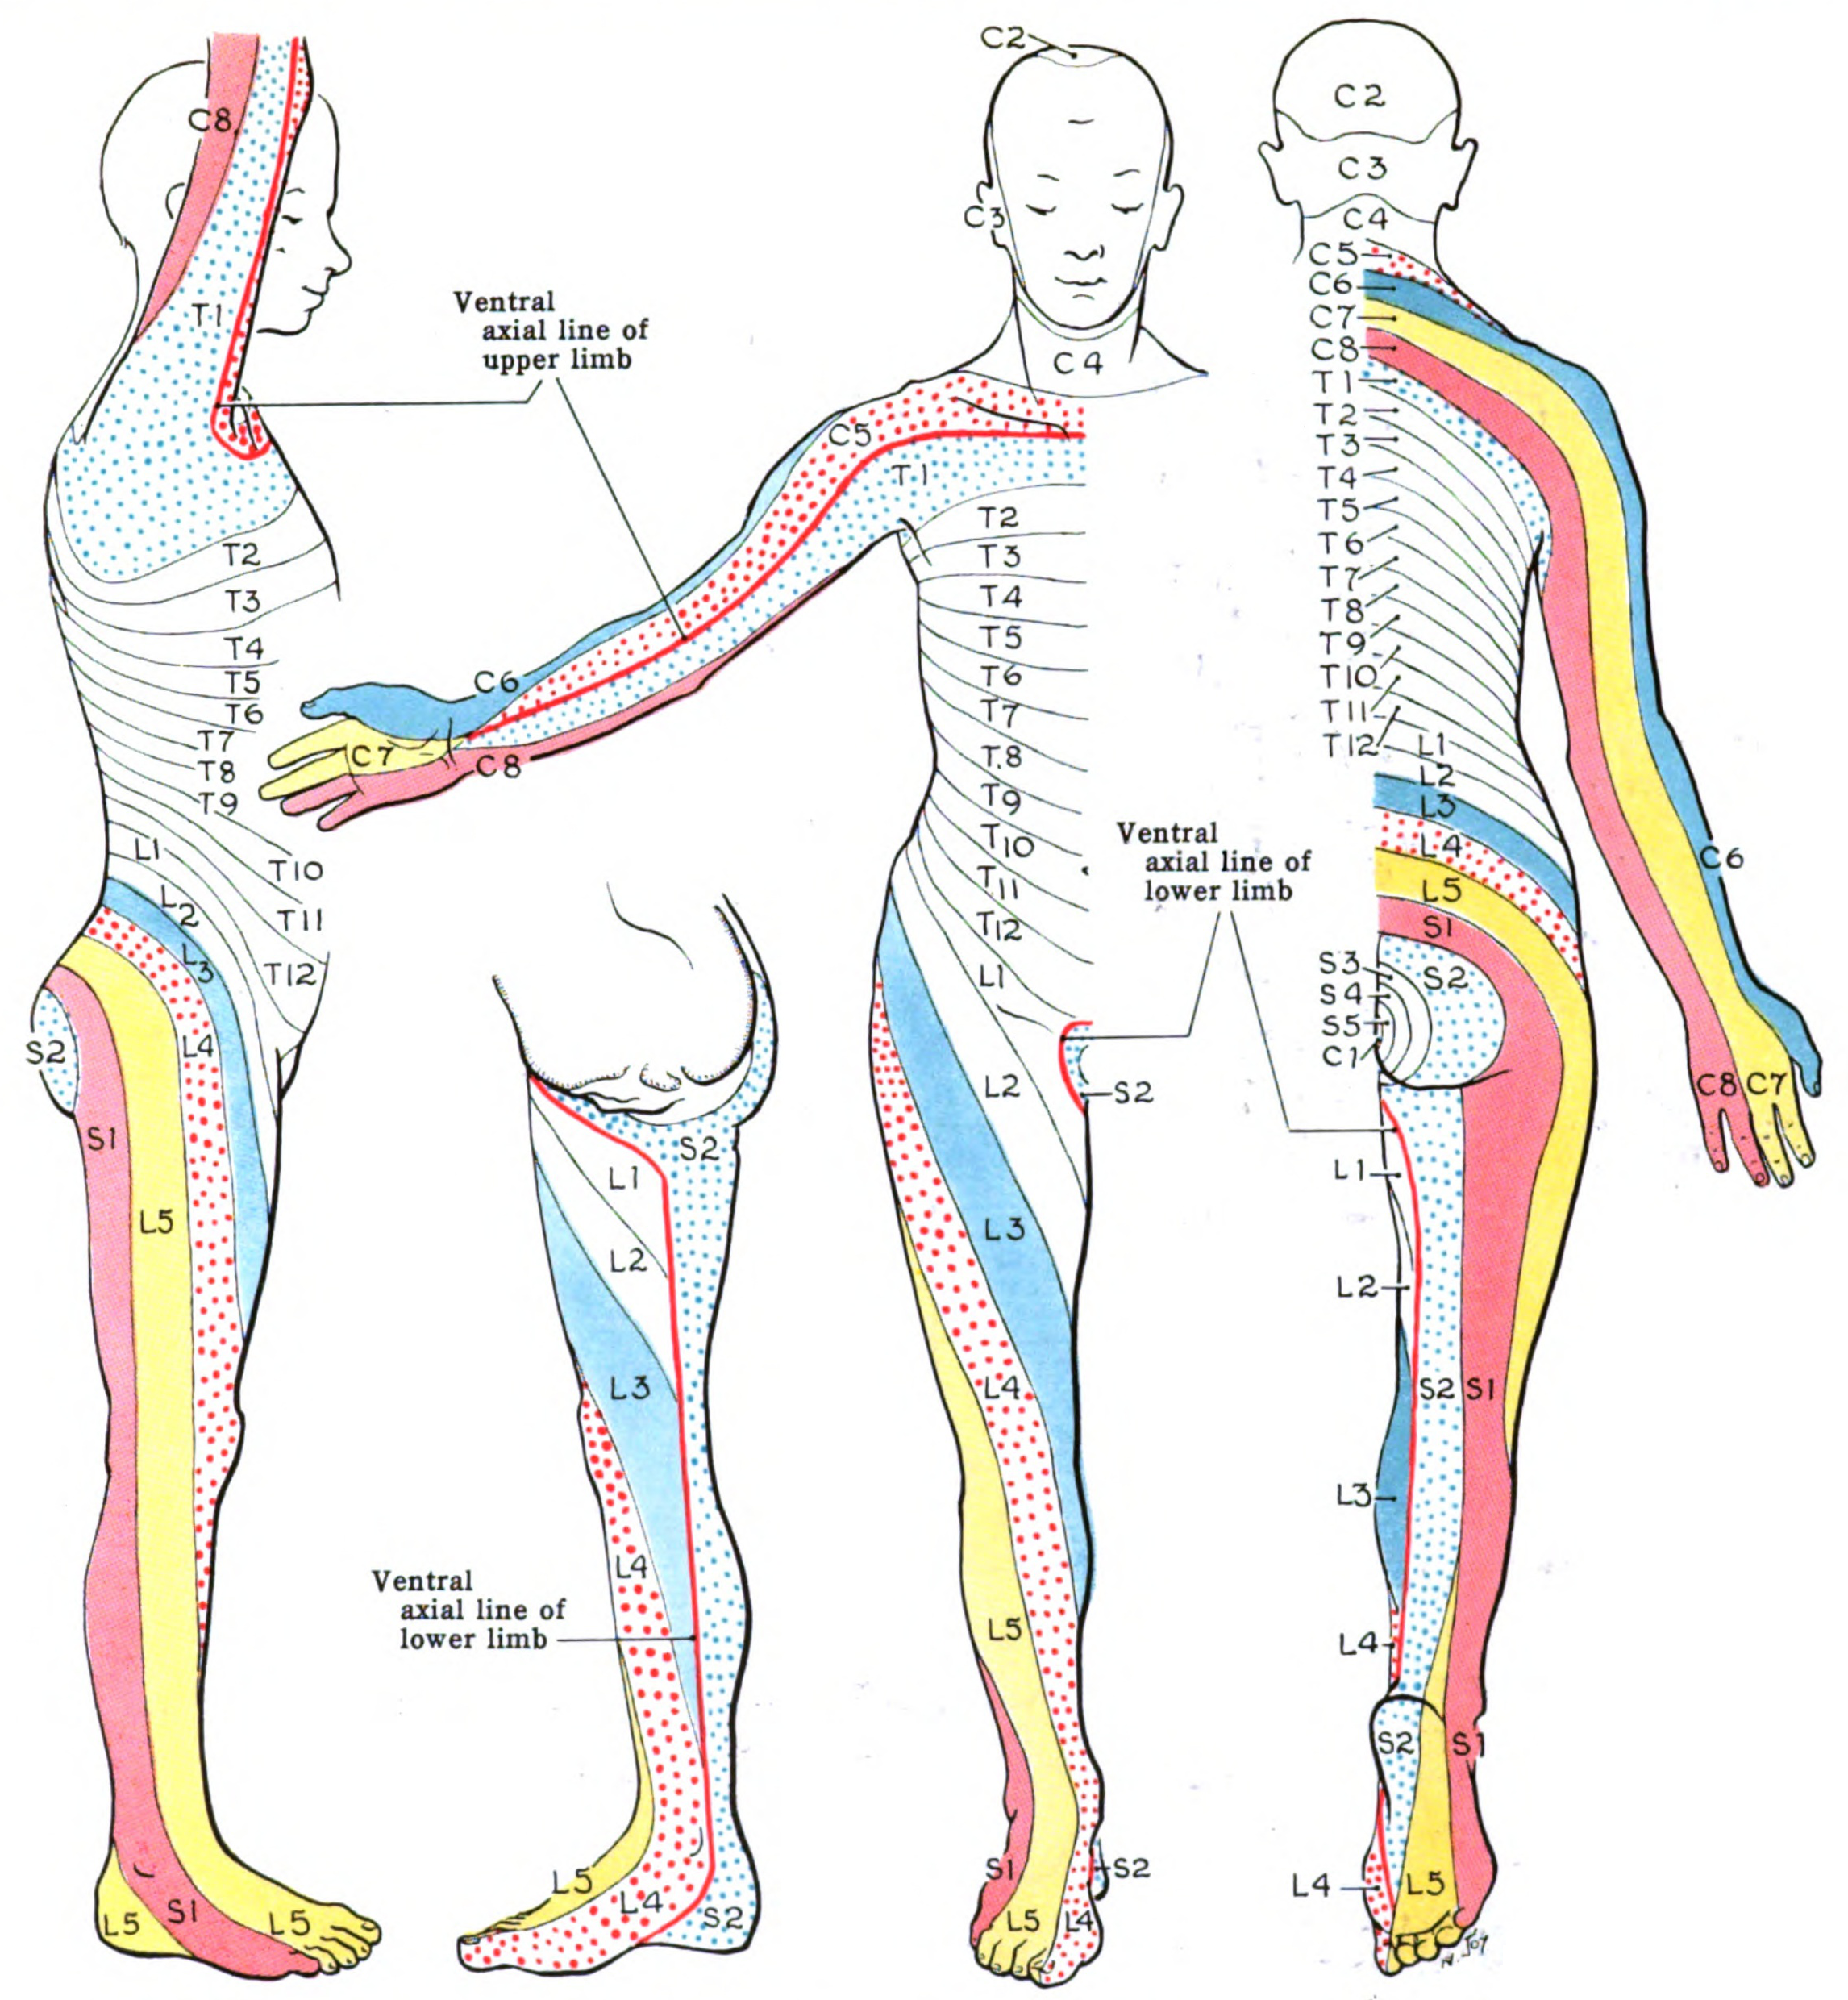 Dermatome (anatomy) - Wikipedia on myotomal map, spinal map, us national parks map, deciduous map, somatosensory system, peripheral nerve field, brachial plexus map, blood–brain barrier, sclerotome map, dermatomal distribution map, lumbosacral plexus map, mtdna haplogroup migration map, nerve map, montserrat map, acupuncture ear map, diffusion map, brachial plexus, nervous system map, cervical pain map, thalamus map, referred pain map, myotome map, st. paul light rail map,